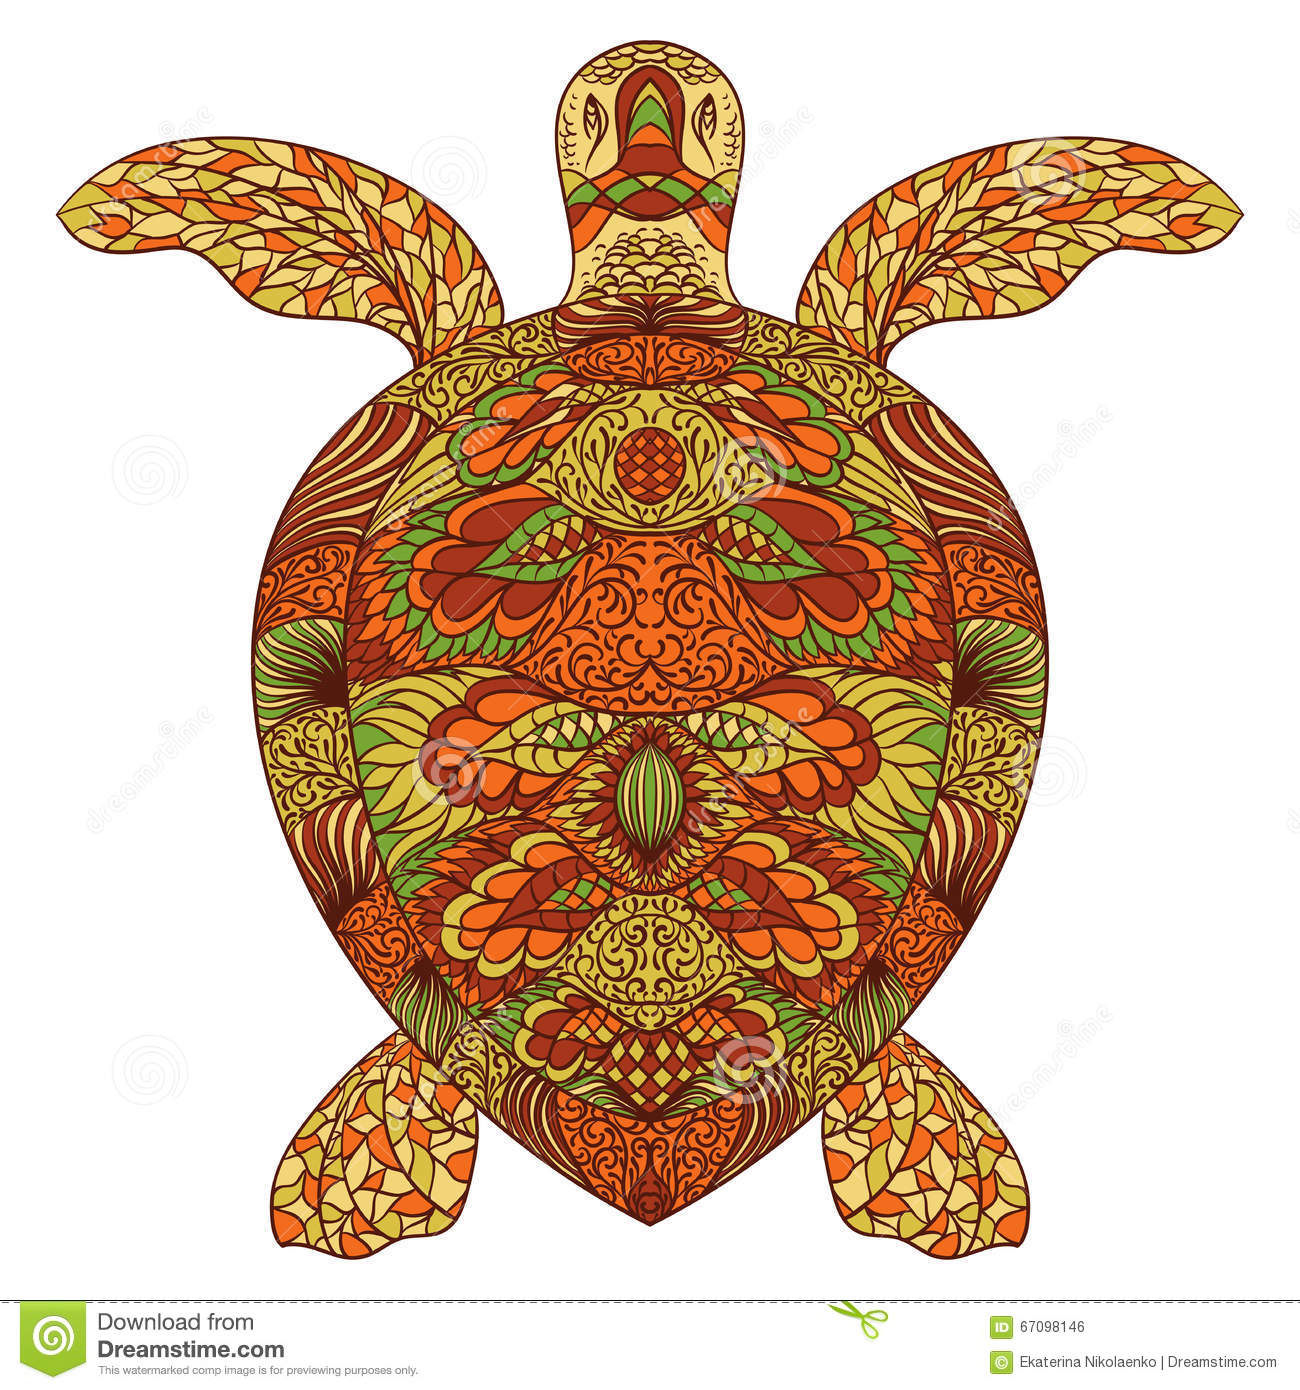 Turtle decorated with oriental ornaments. Hand drawn vector illustration